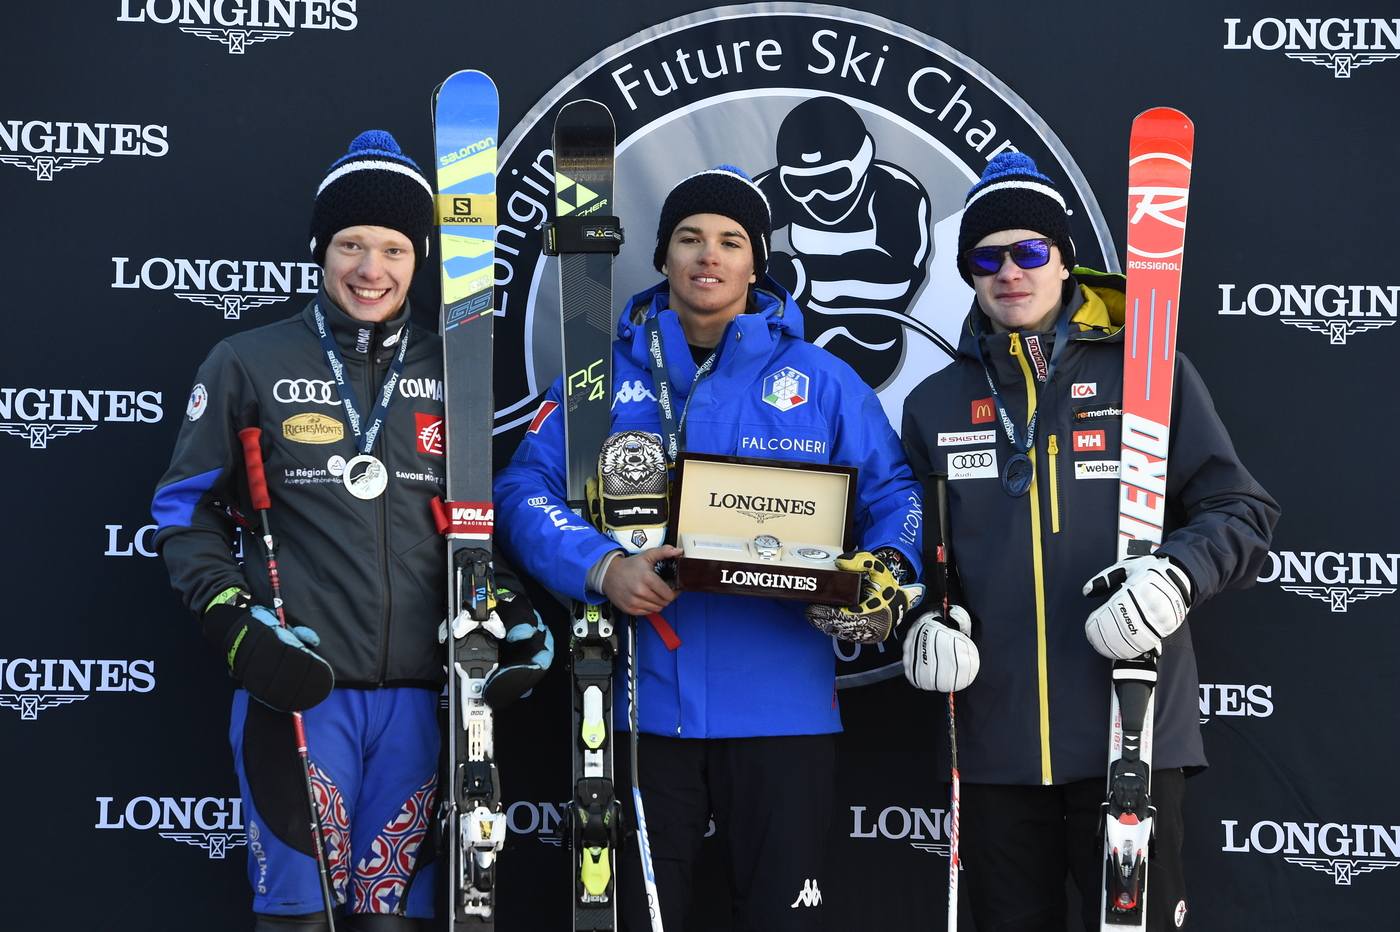 Longines Alpine Skiing Event: Longines Future Ski Champions : The best international young skiers faced off during the FIS Alpine World Cup Finals   23